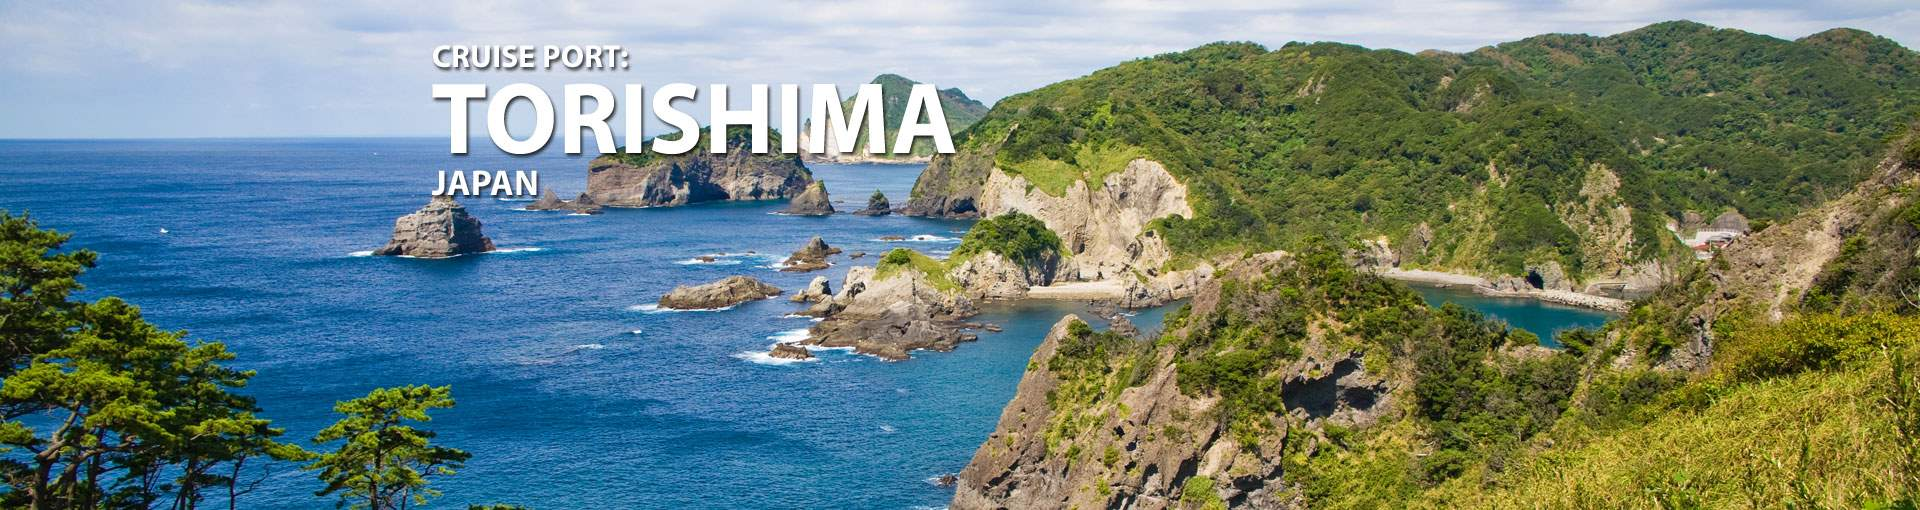 Cruises to Torishima, Japan